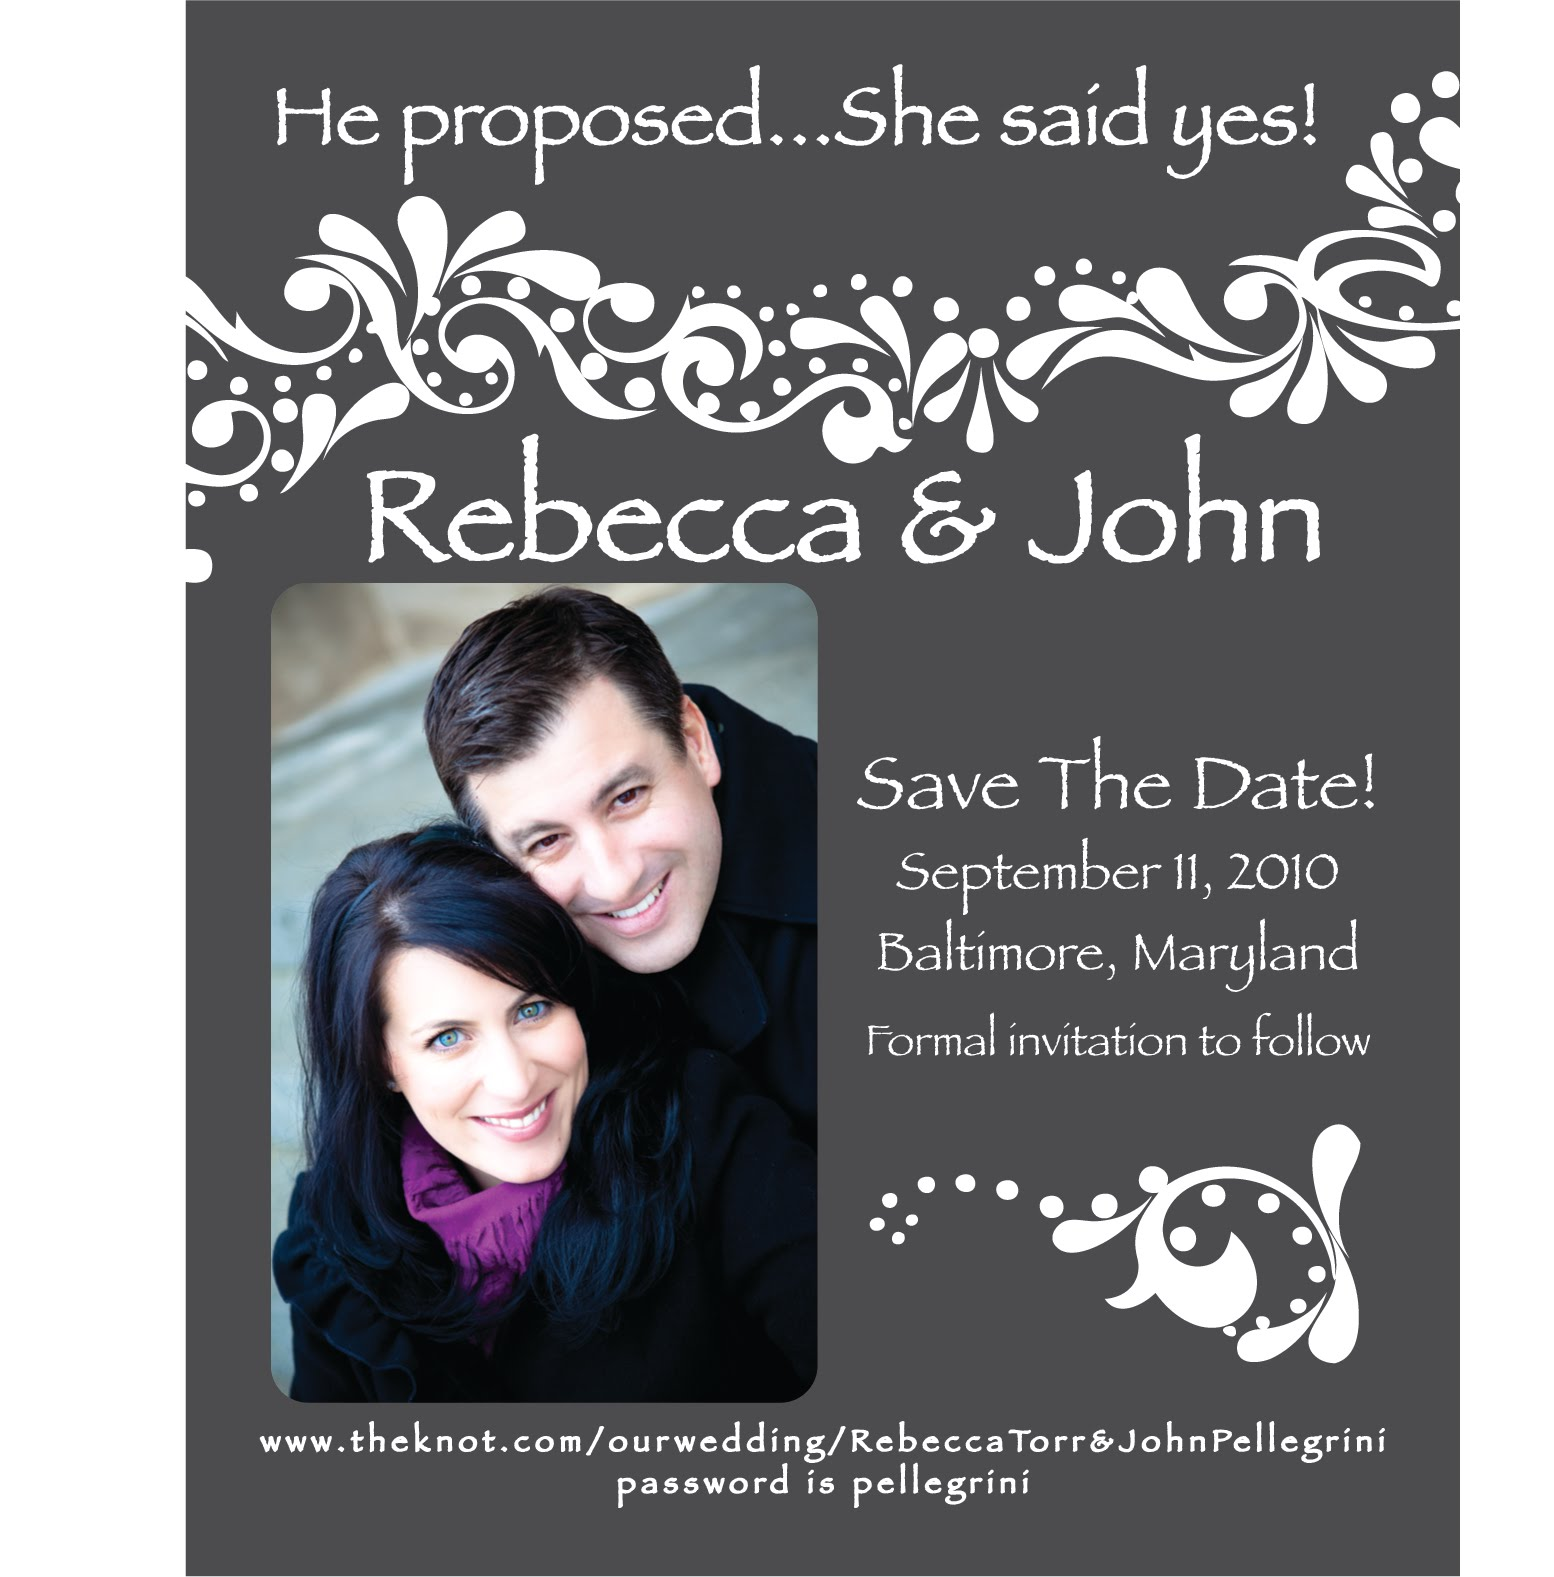 Here Are Some Recent Designs That I Have Done For Save The Date Magnets You Were All Great To Work With Looking Forward Designing Invites